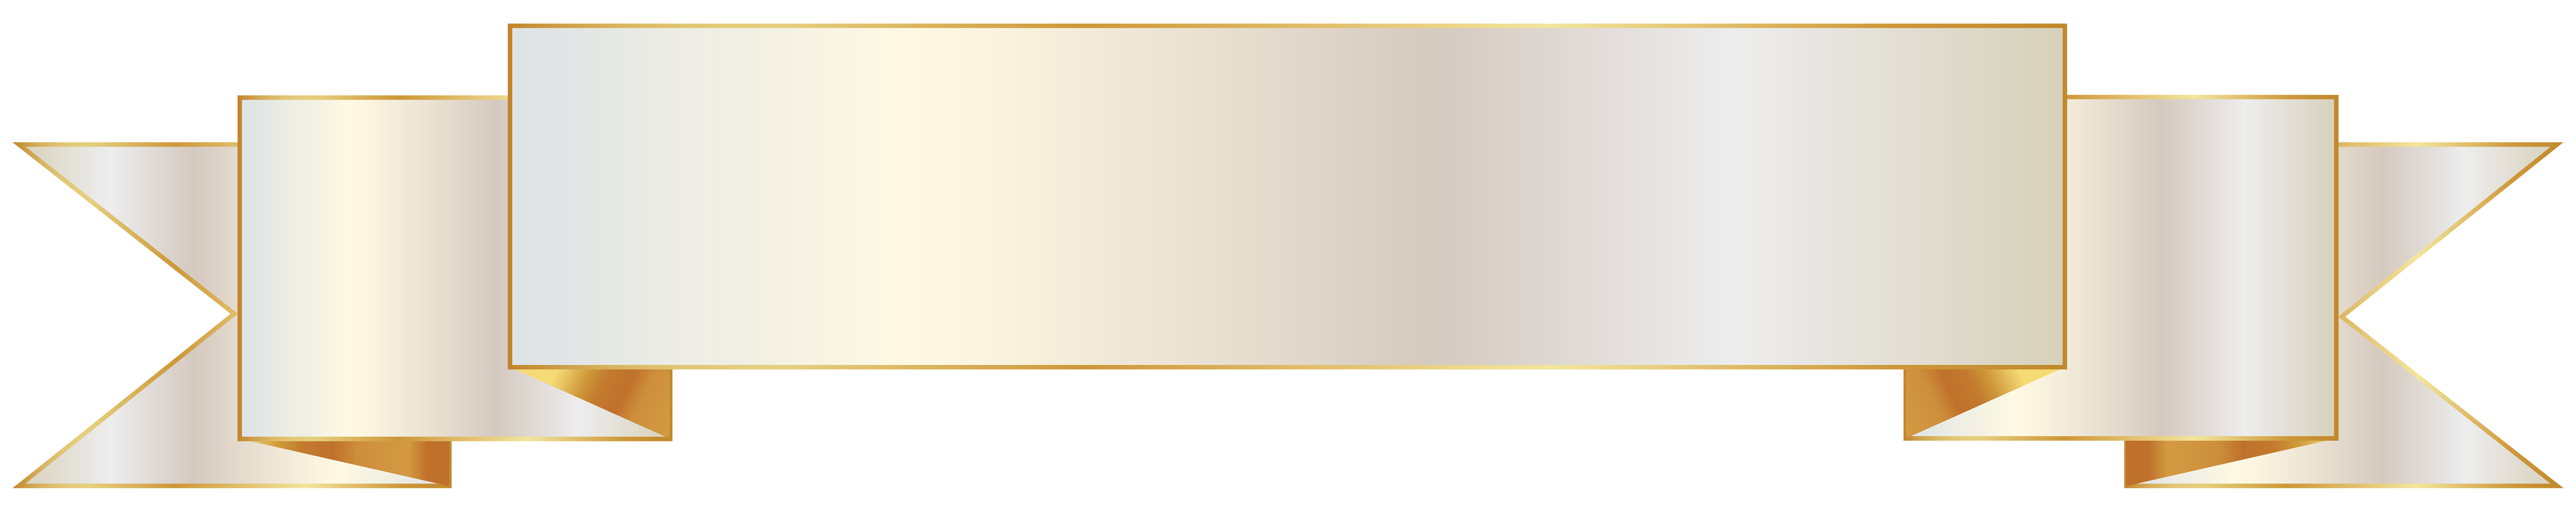 White and gold banner. Banners clipart sky